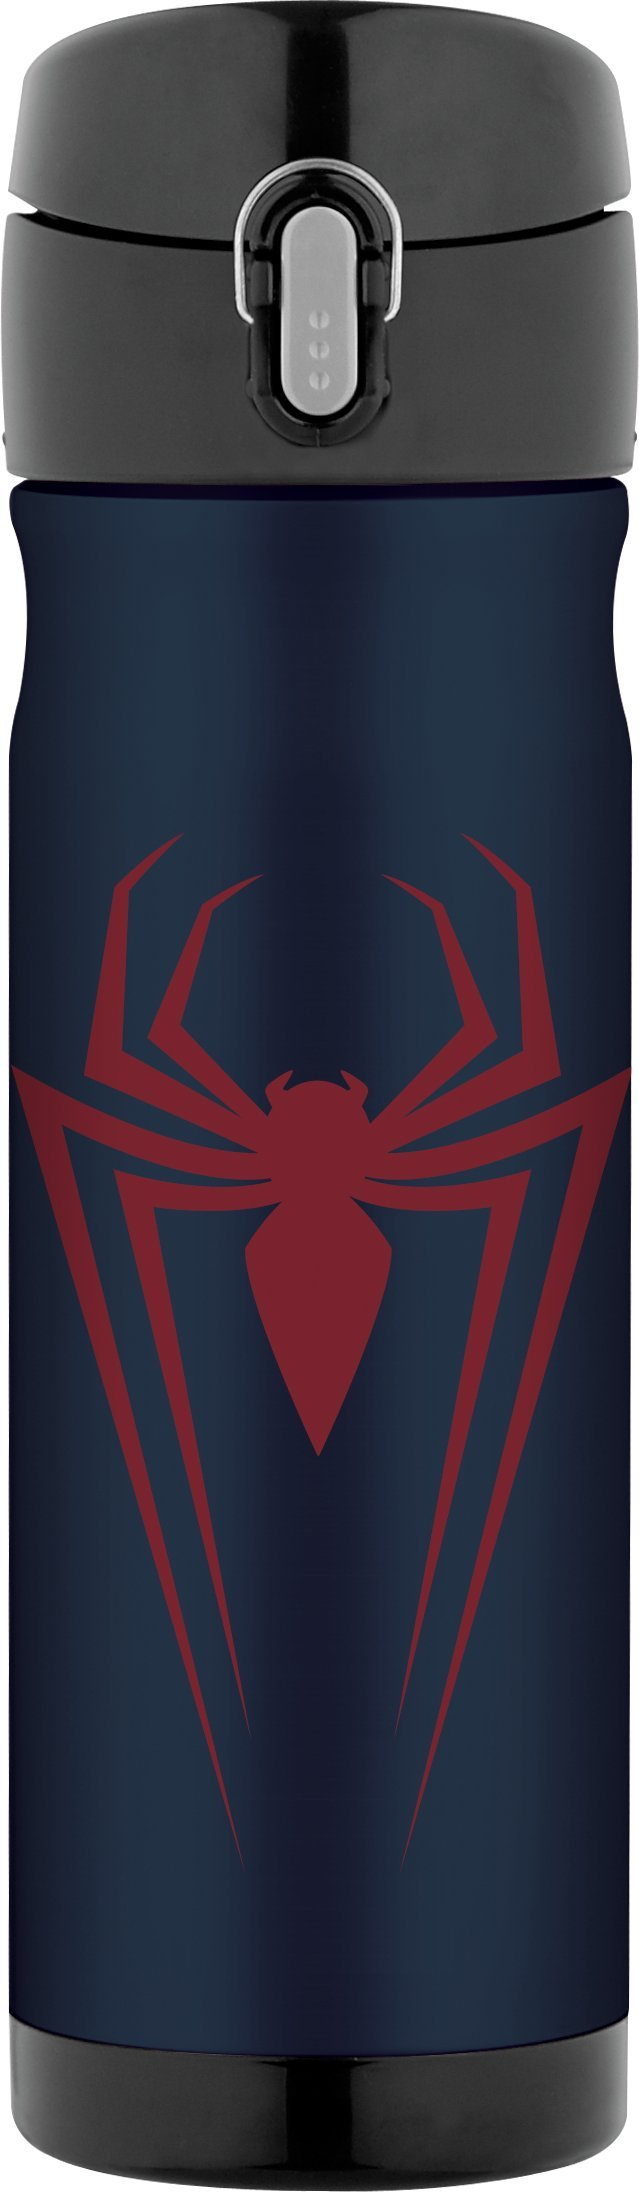 Thermos 16 Ounce Stainless Steel Commuter Bottle, Spiderman by Thermos